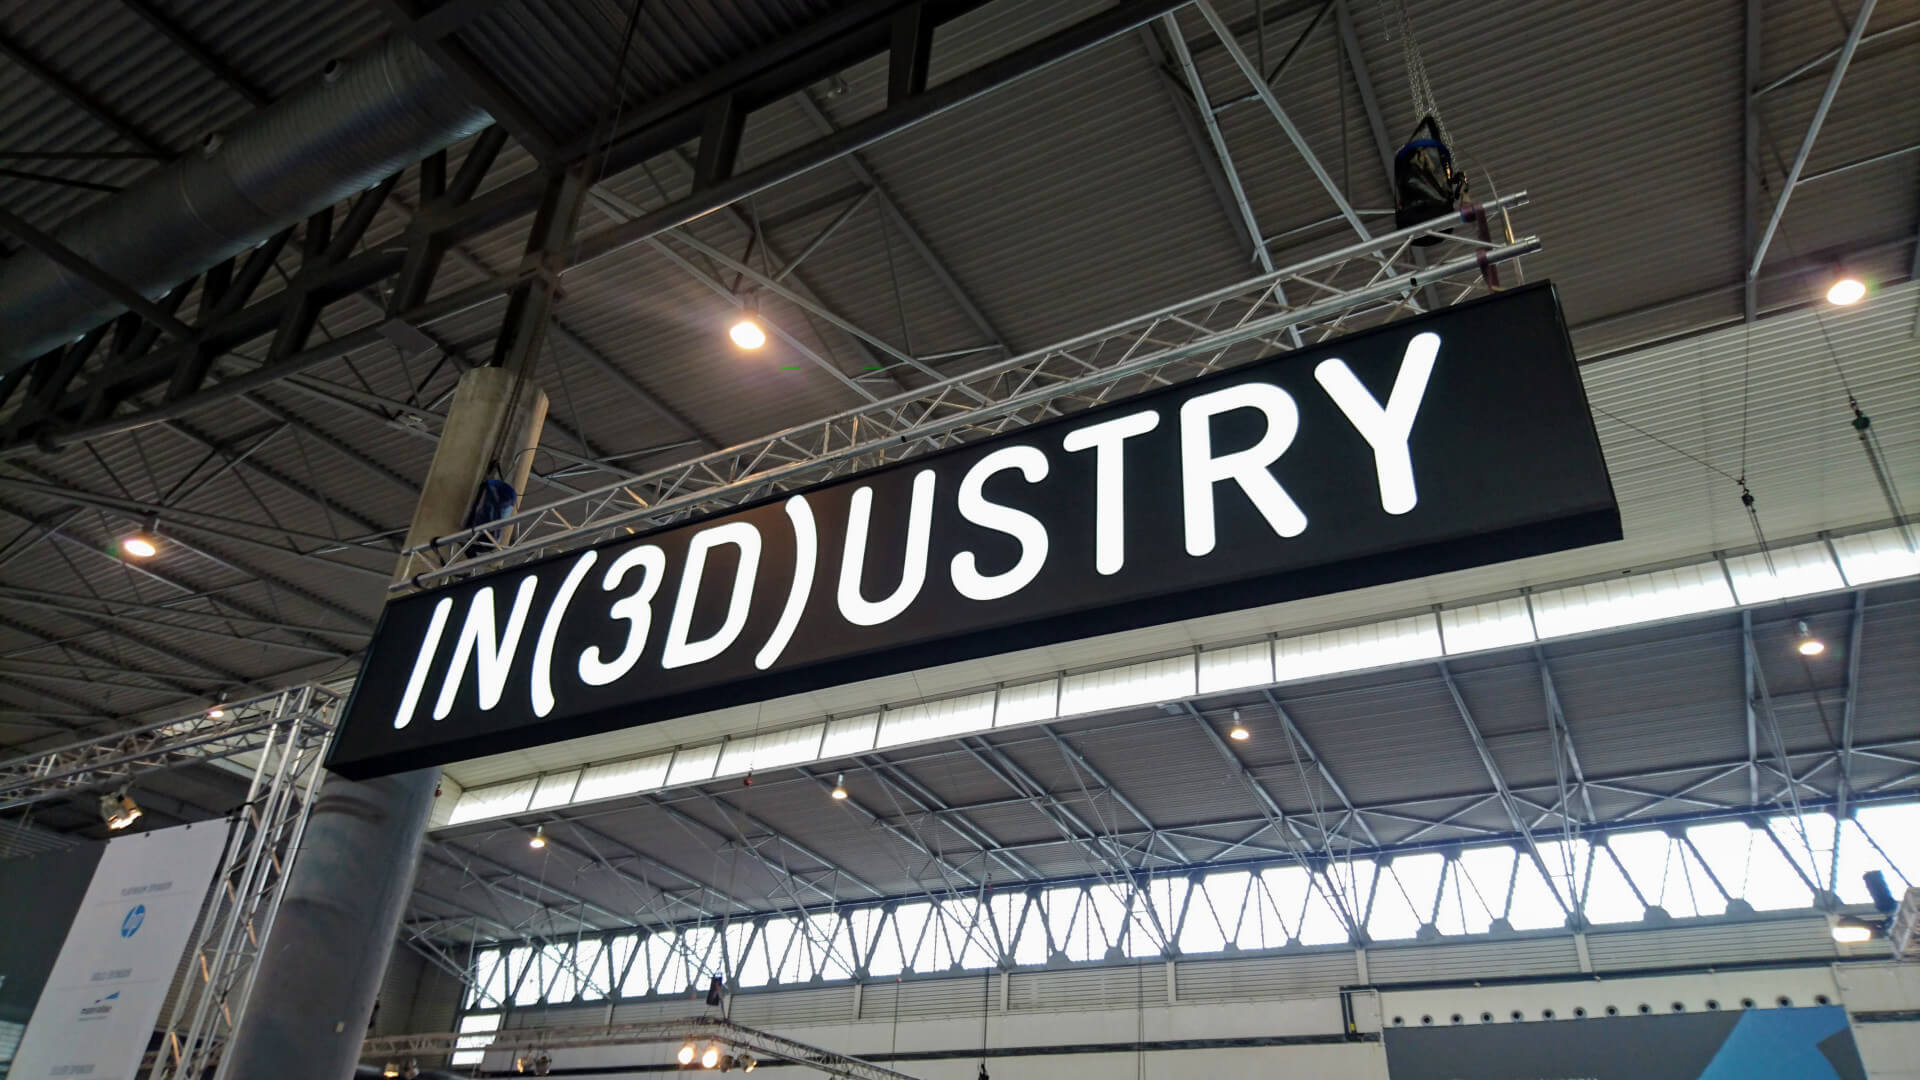 Temporary Museum of Reality in Barcelona with In(3D)ustry | All3DP